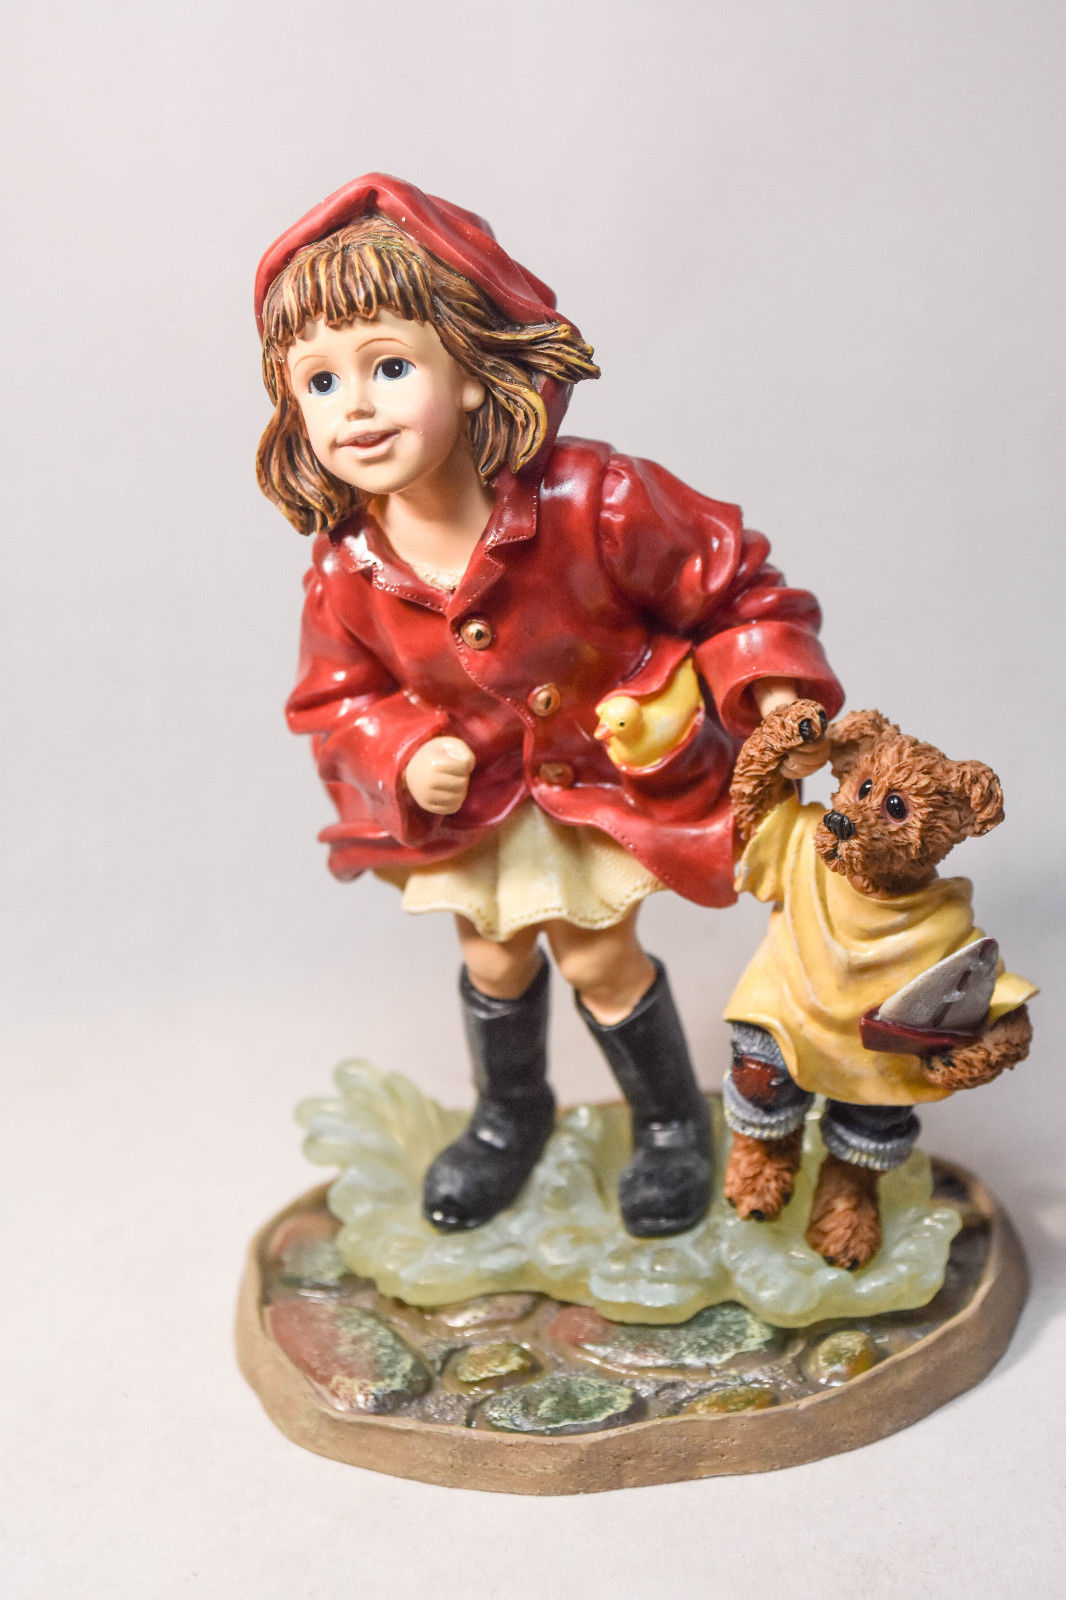 Boyds Bears: Brooke With Joshua - Puddle Jumpers - #3551 - 1st Edition - 1E/3304 image 5